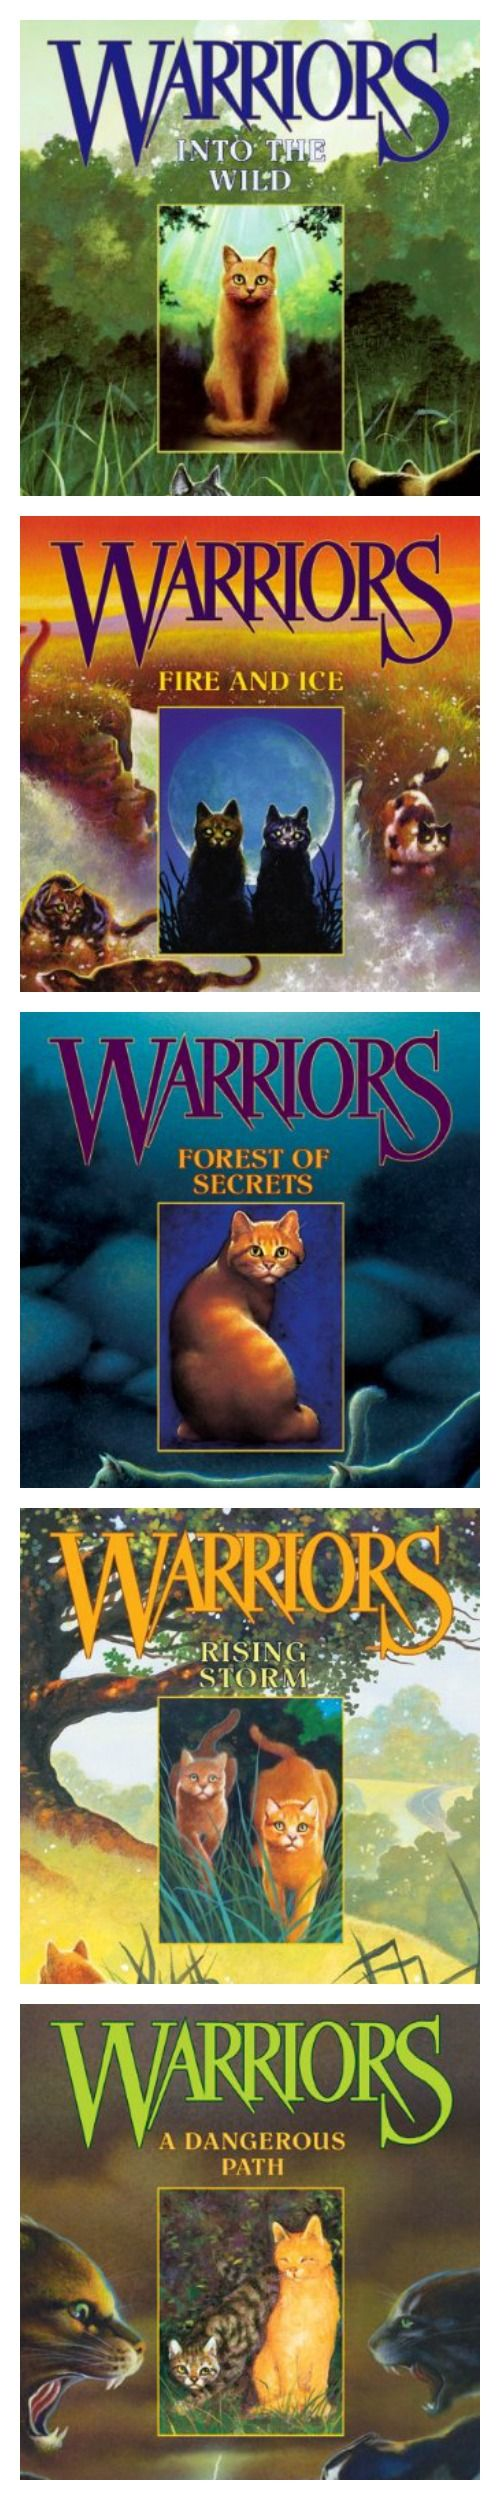 *book Review* My Young Friend Leah Reviews The Warriors Book Series For  Young Readers